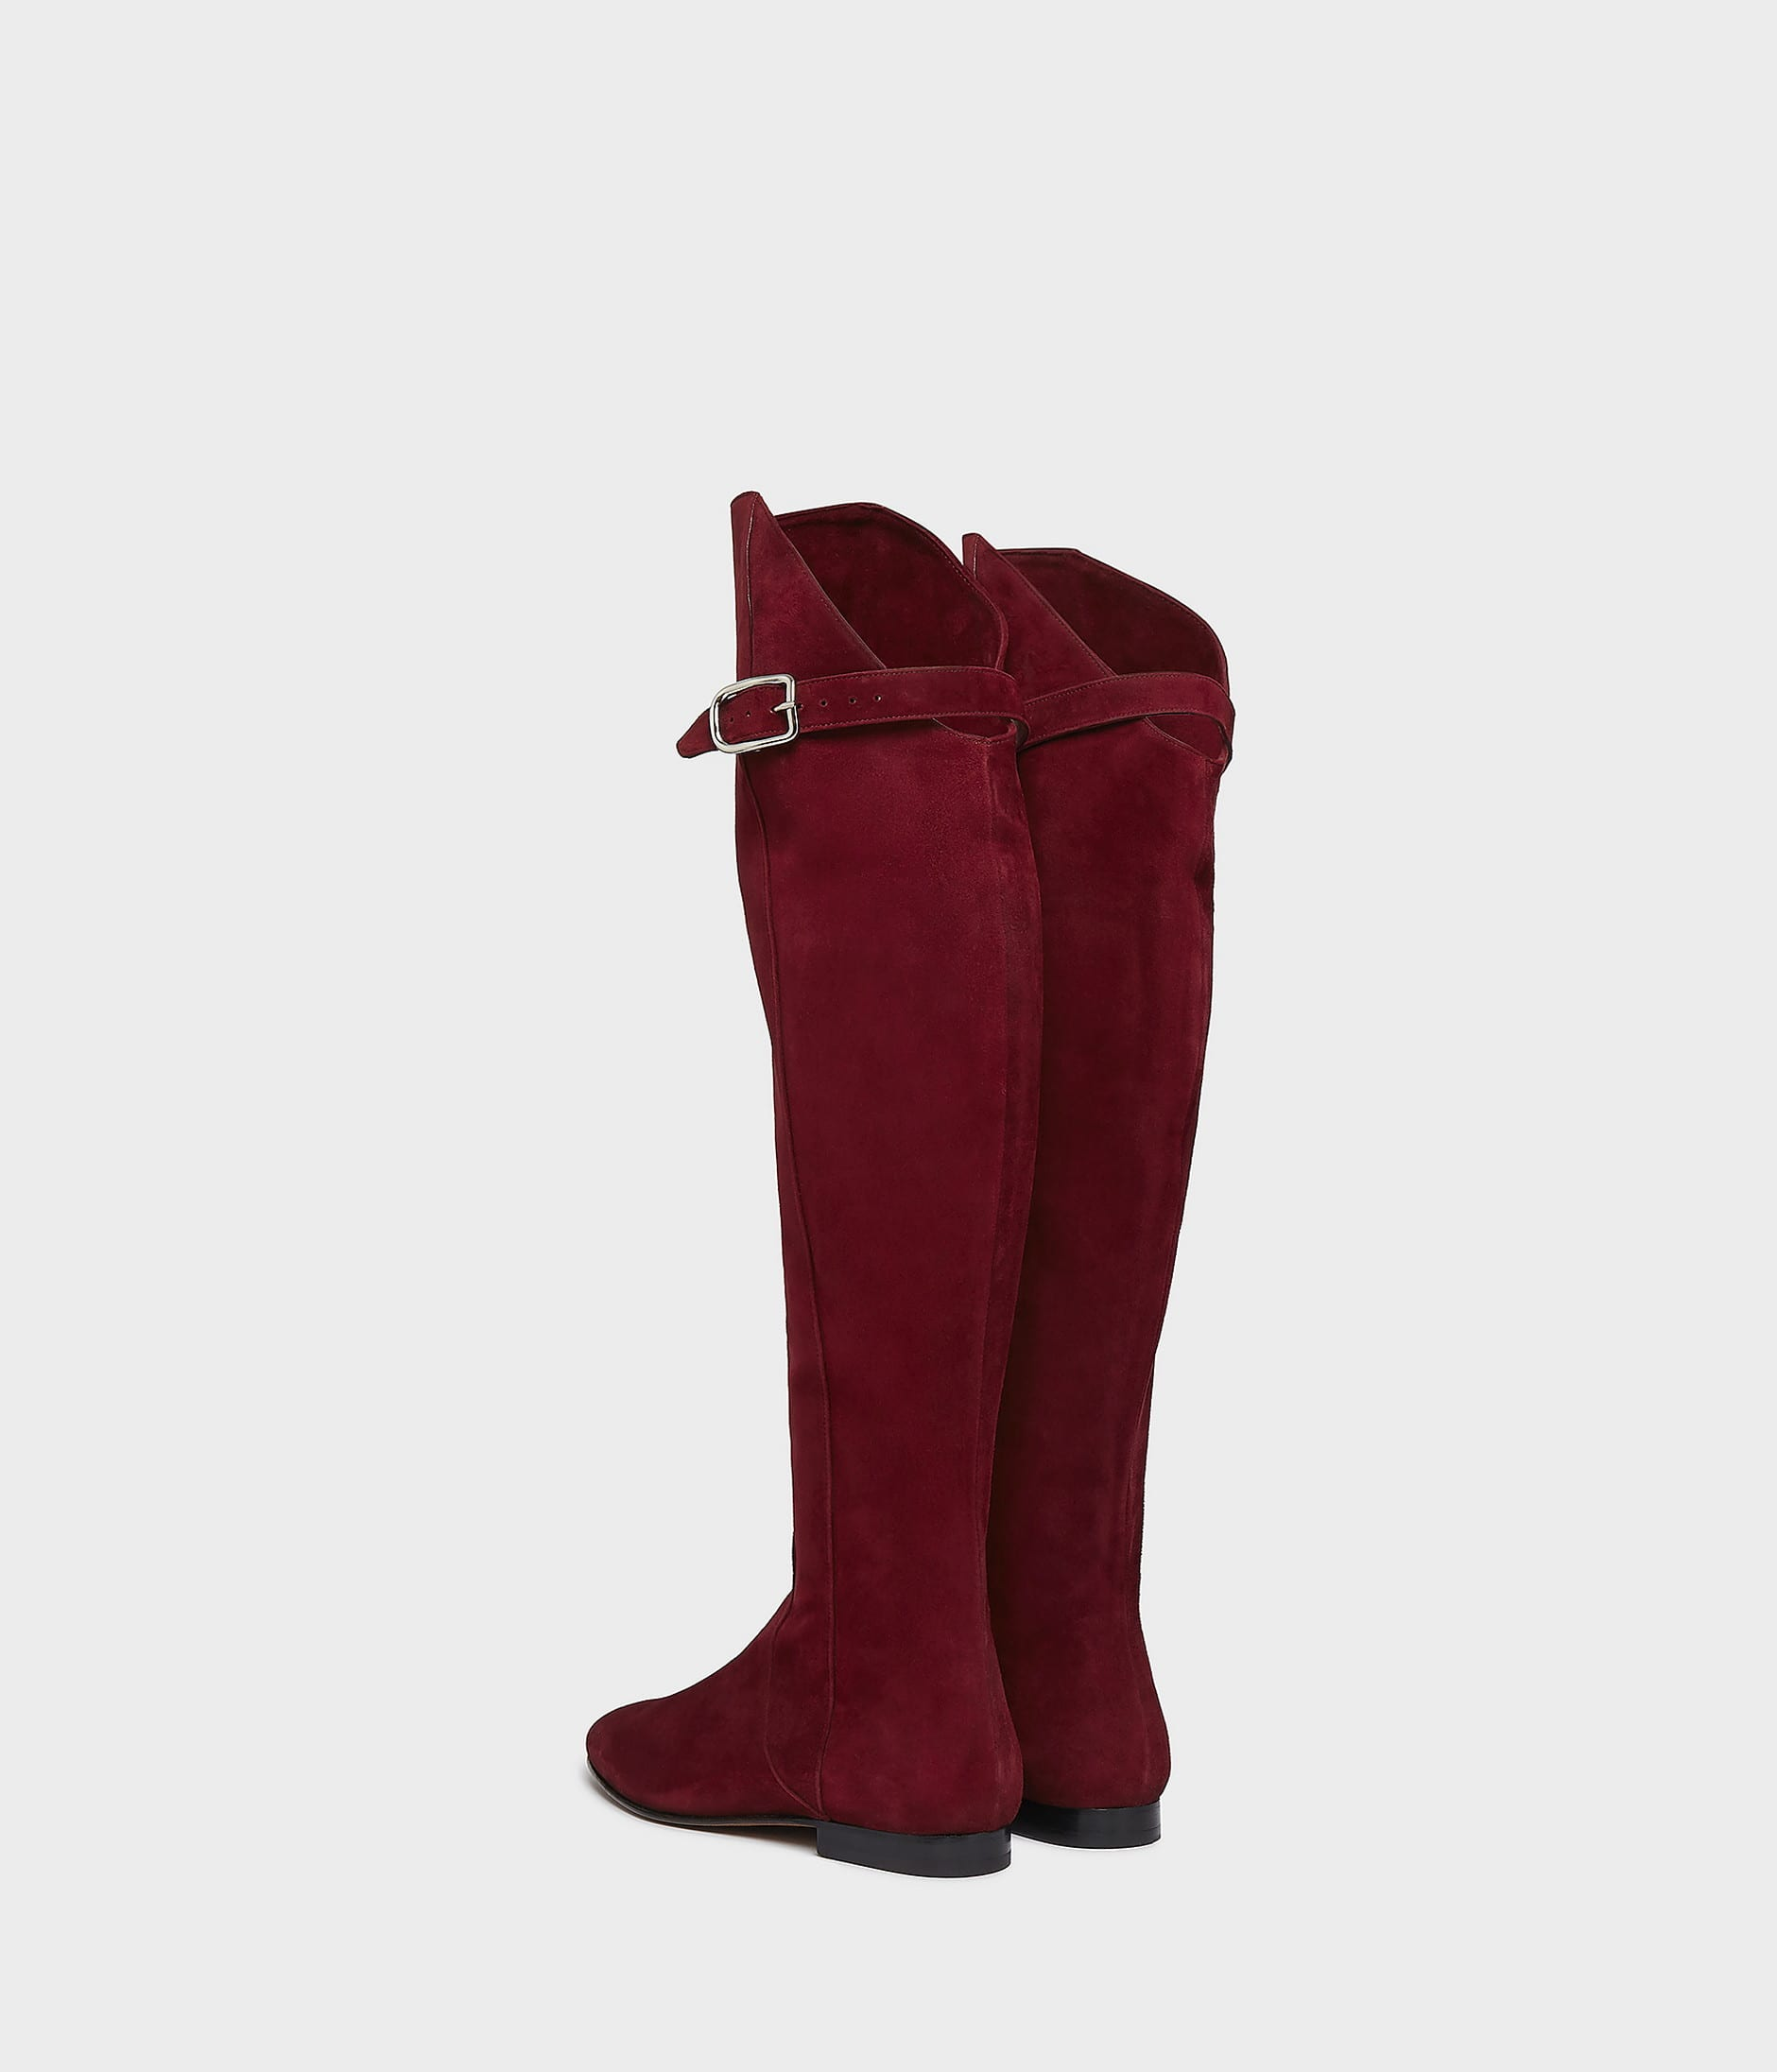 OVER THE KNEE RIDING BOOT 詳細画像 BURGUNDY 4